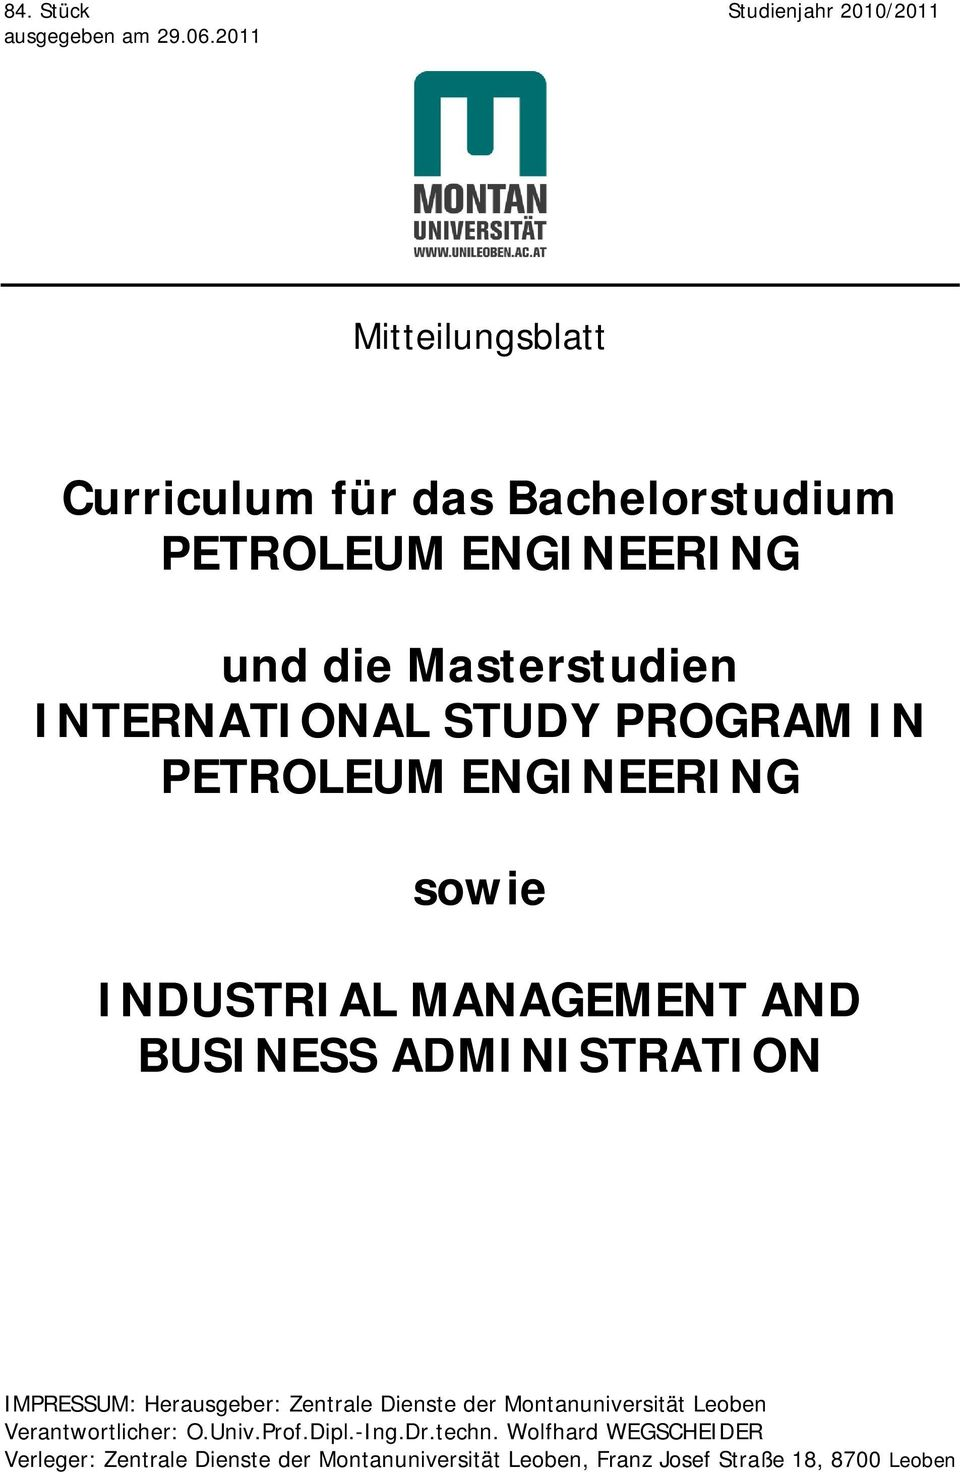 INTERNATIONAL STUDY PROGRAM IN PETROLEUM ENGINEERING sowie INDUSTRIAL MANAGEMENT AND BUSINE ADMINISTRATION IMPREUM: